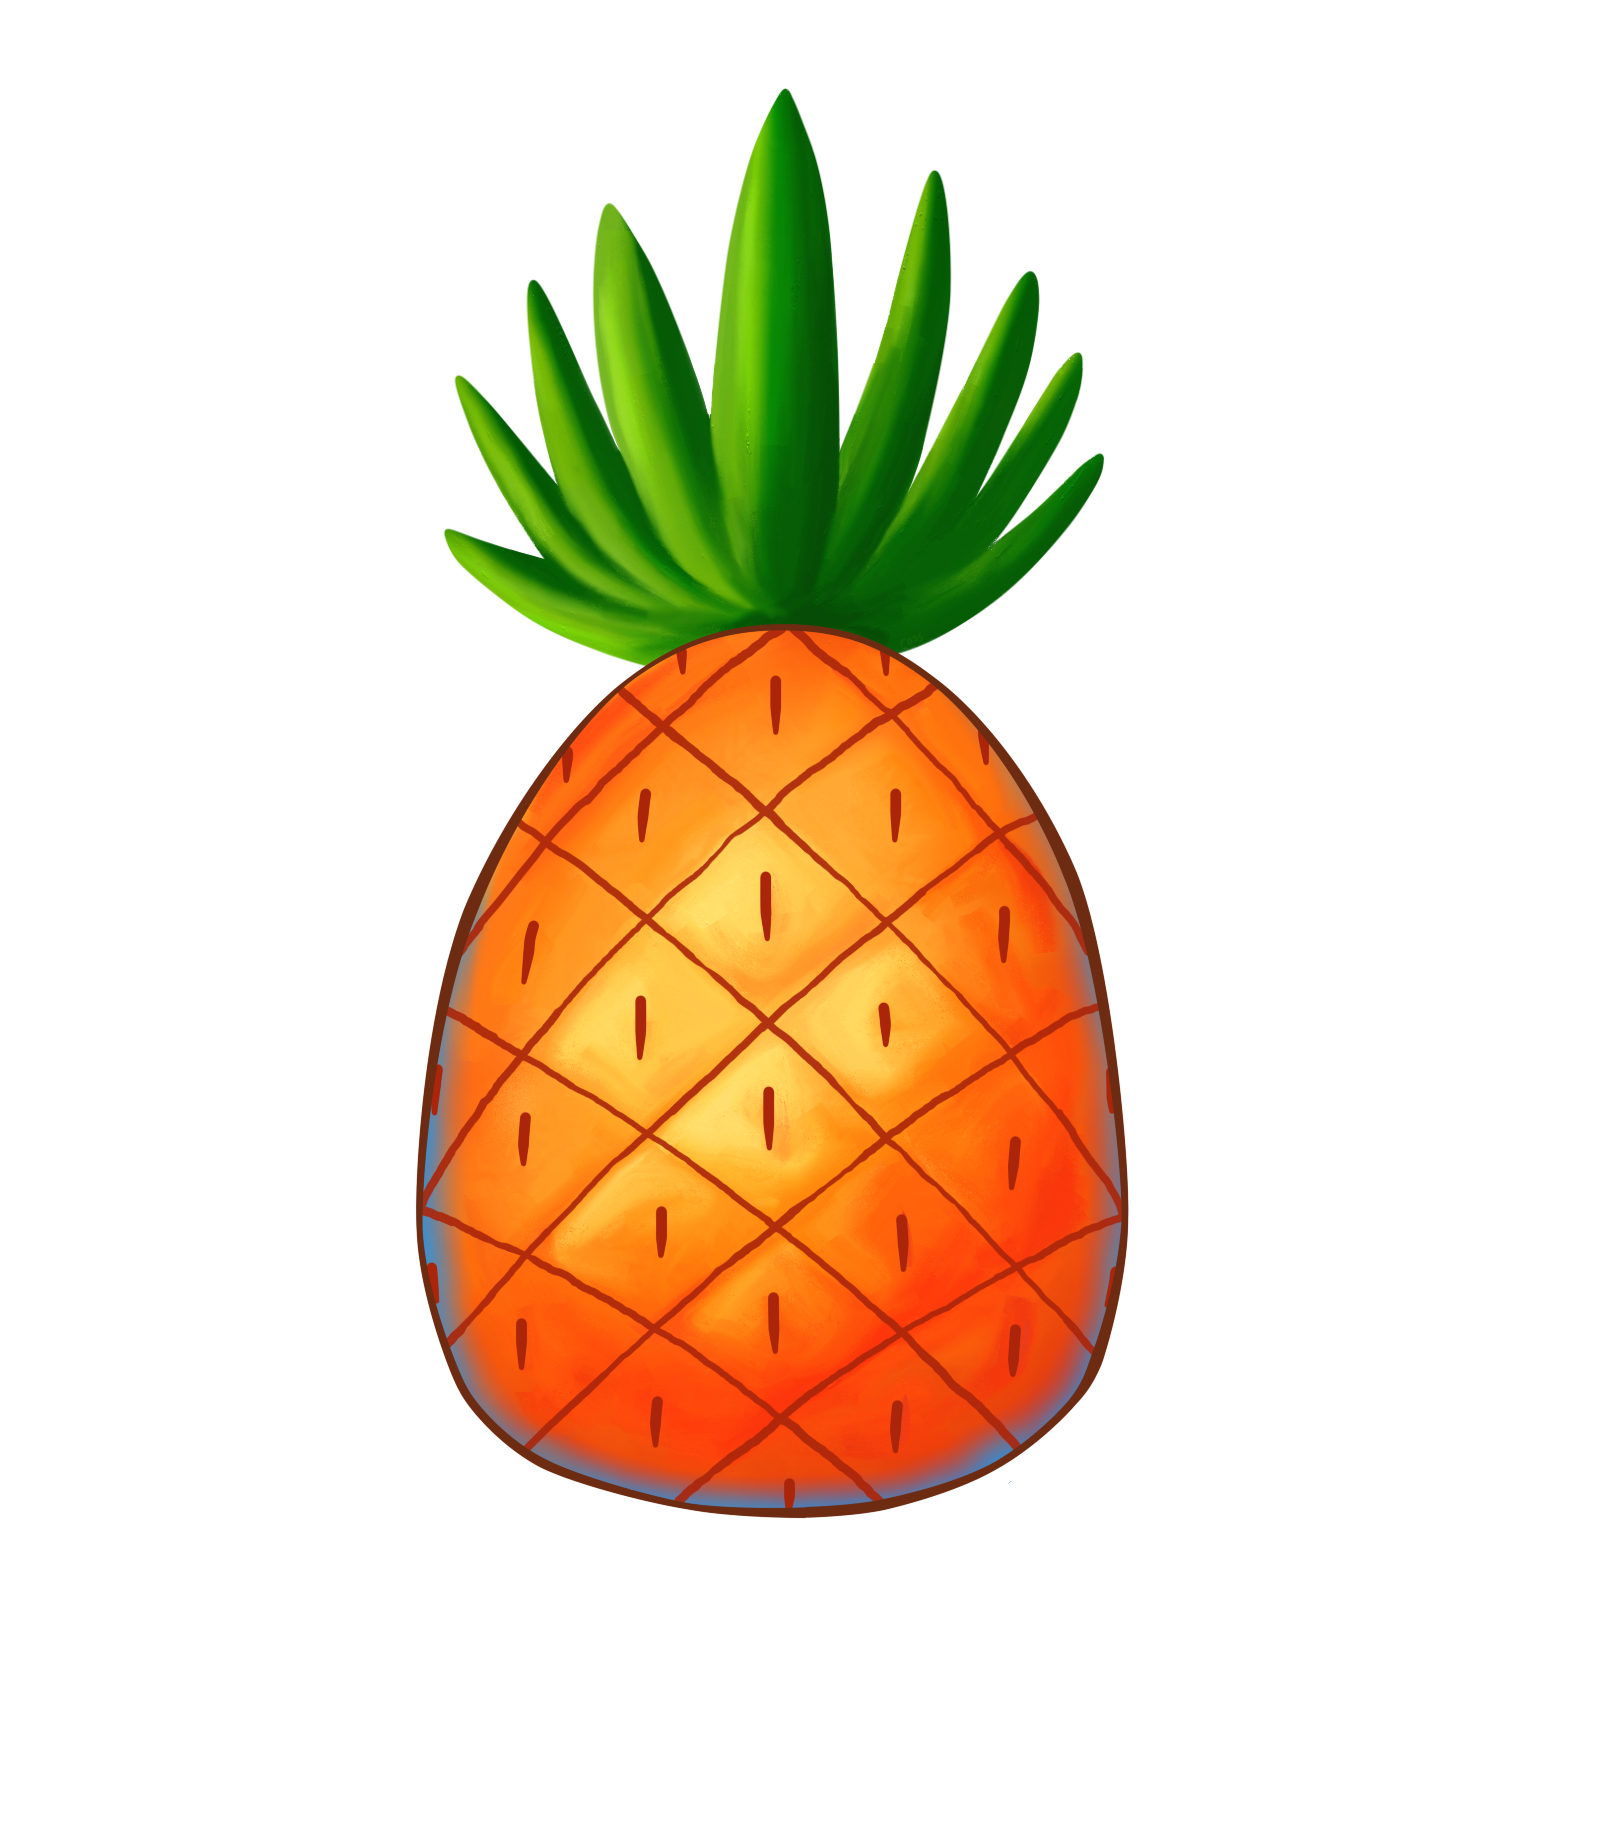 Tumblr collage stickers png. Clipart pineapple sticker